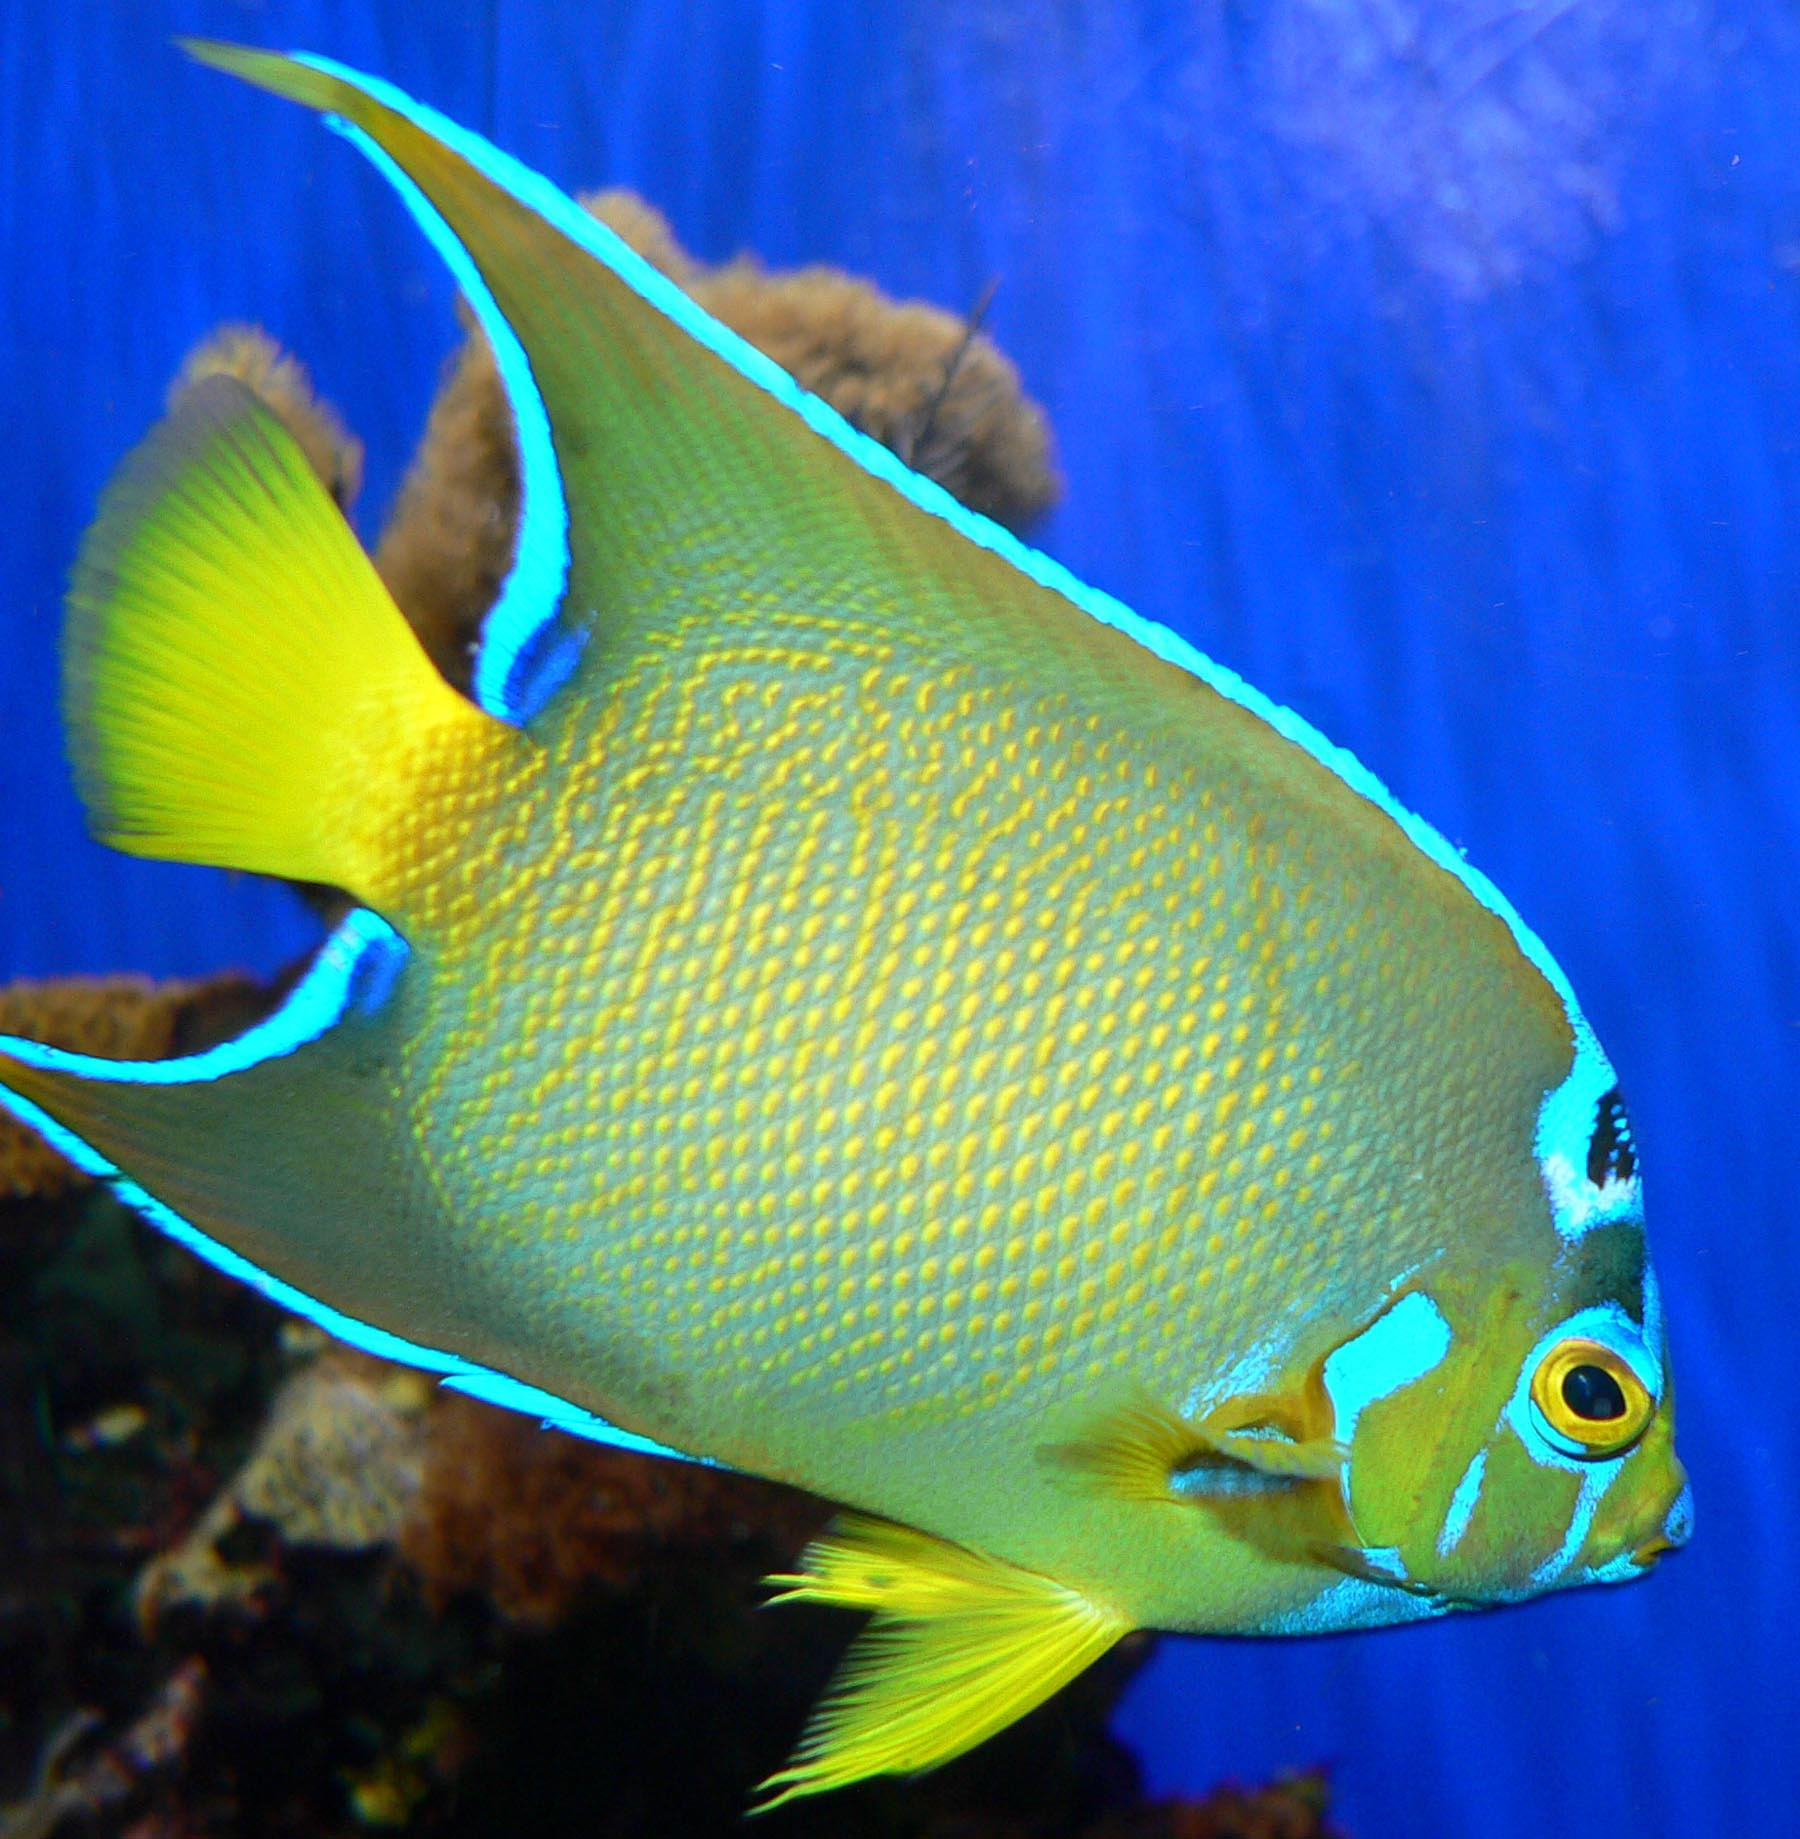 Kinds of Aquarium Fish